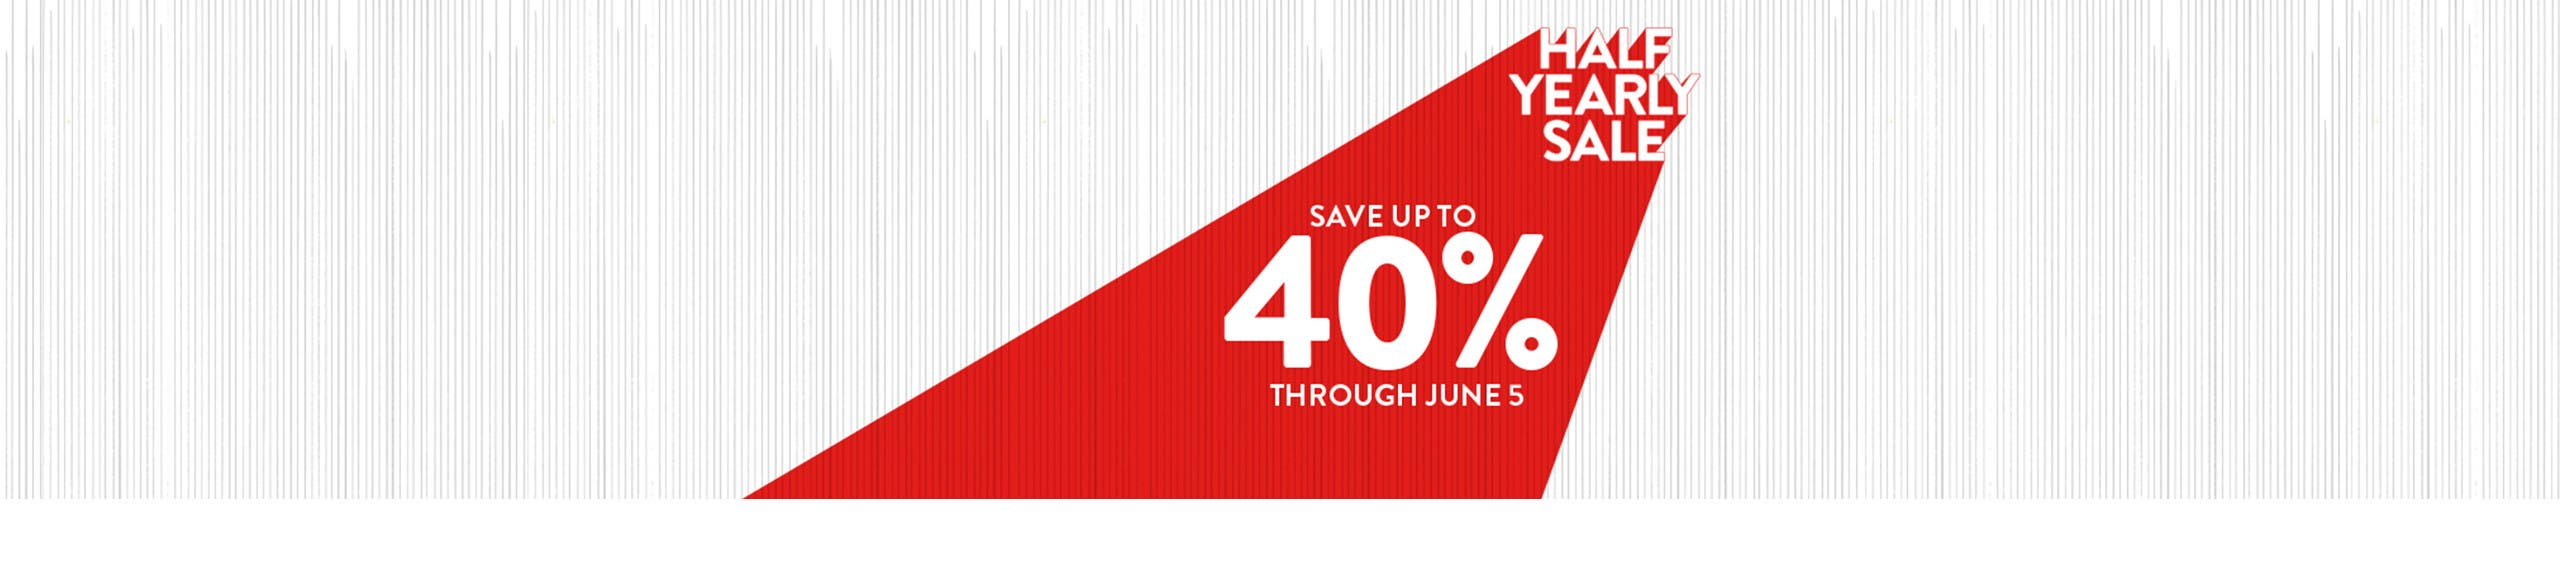 Half-Yearly Sale. Save up to 40% through June 5.